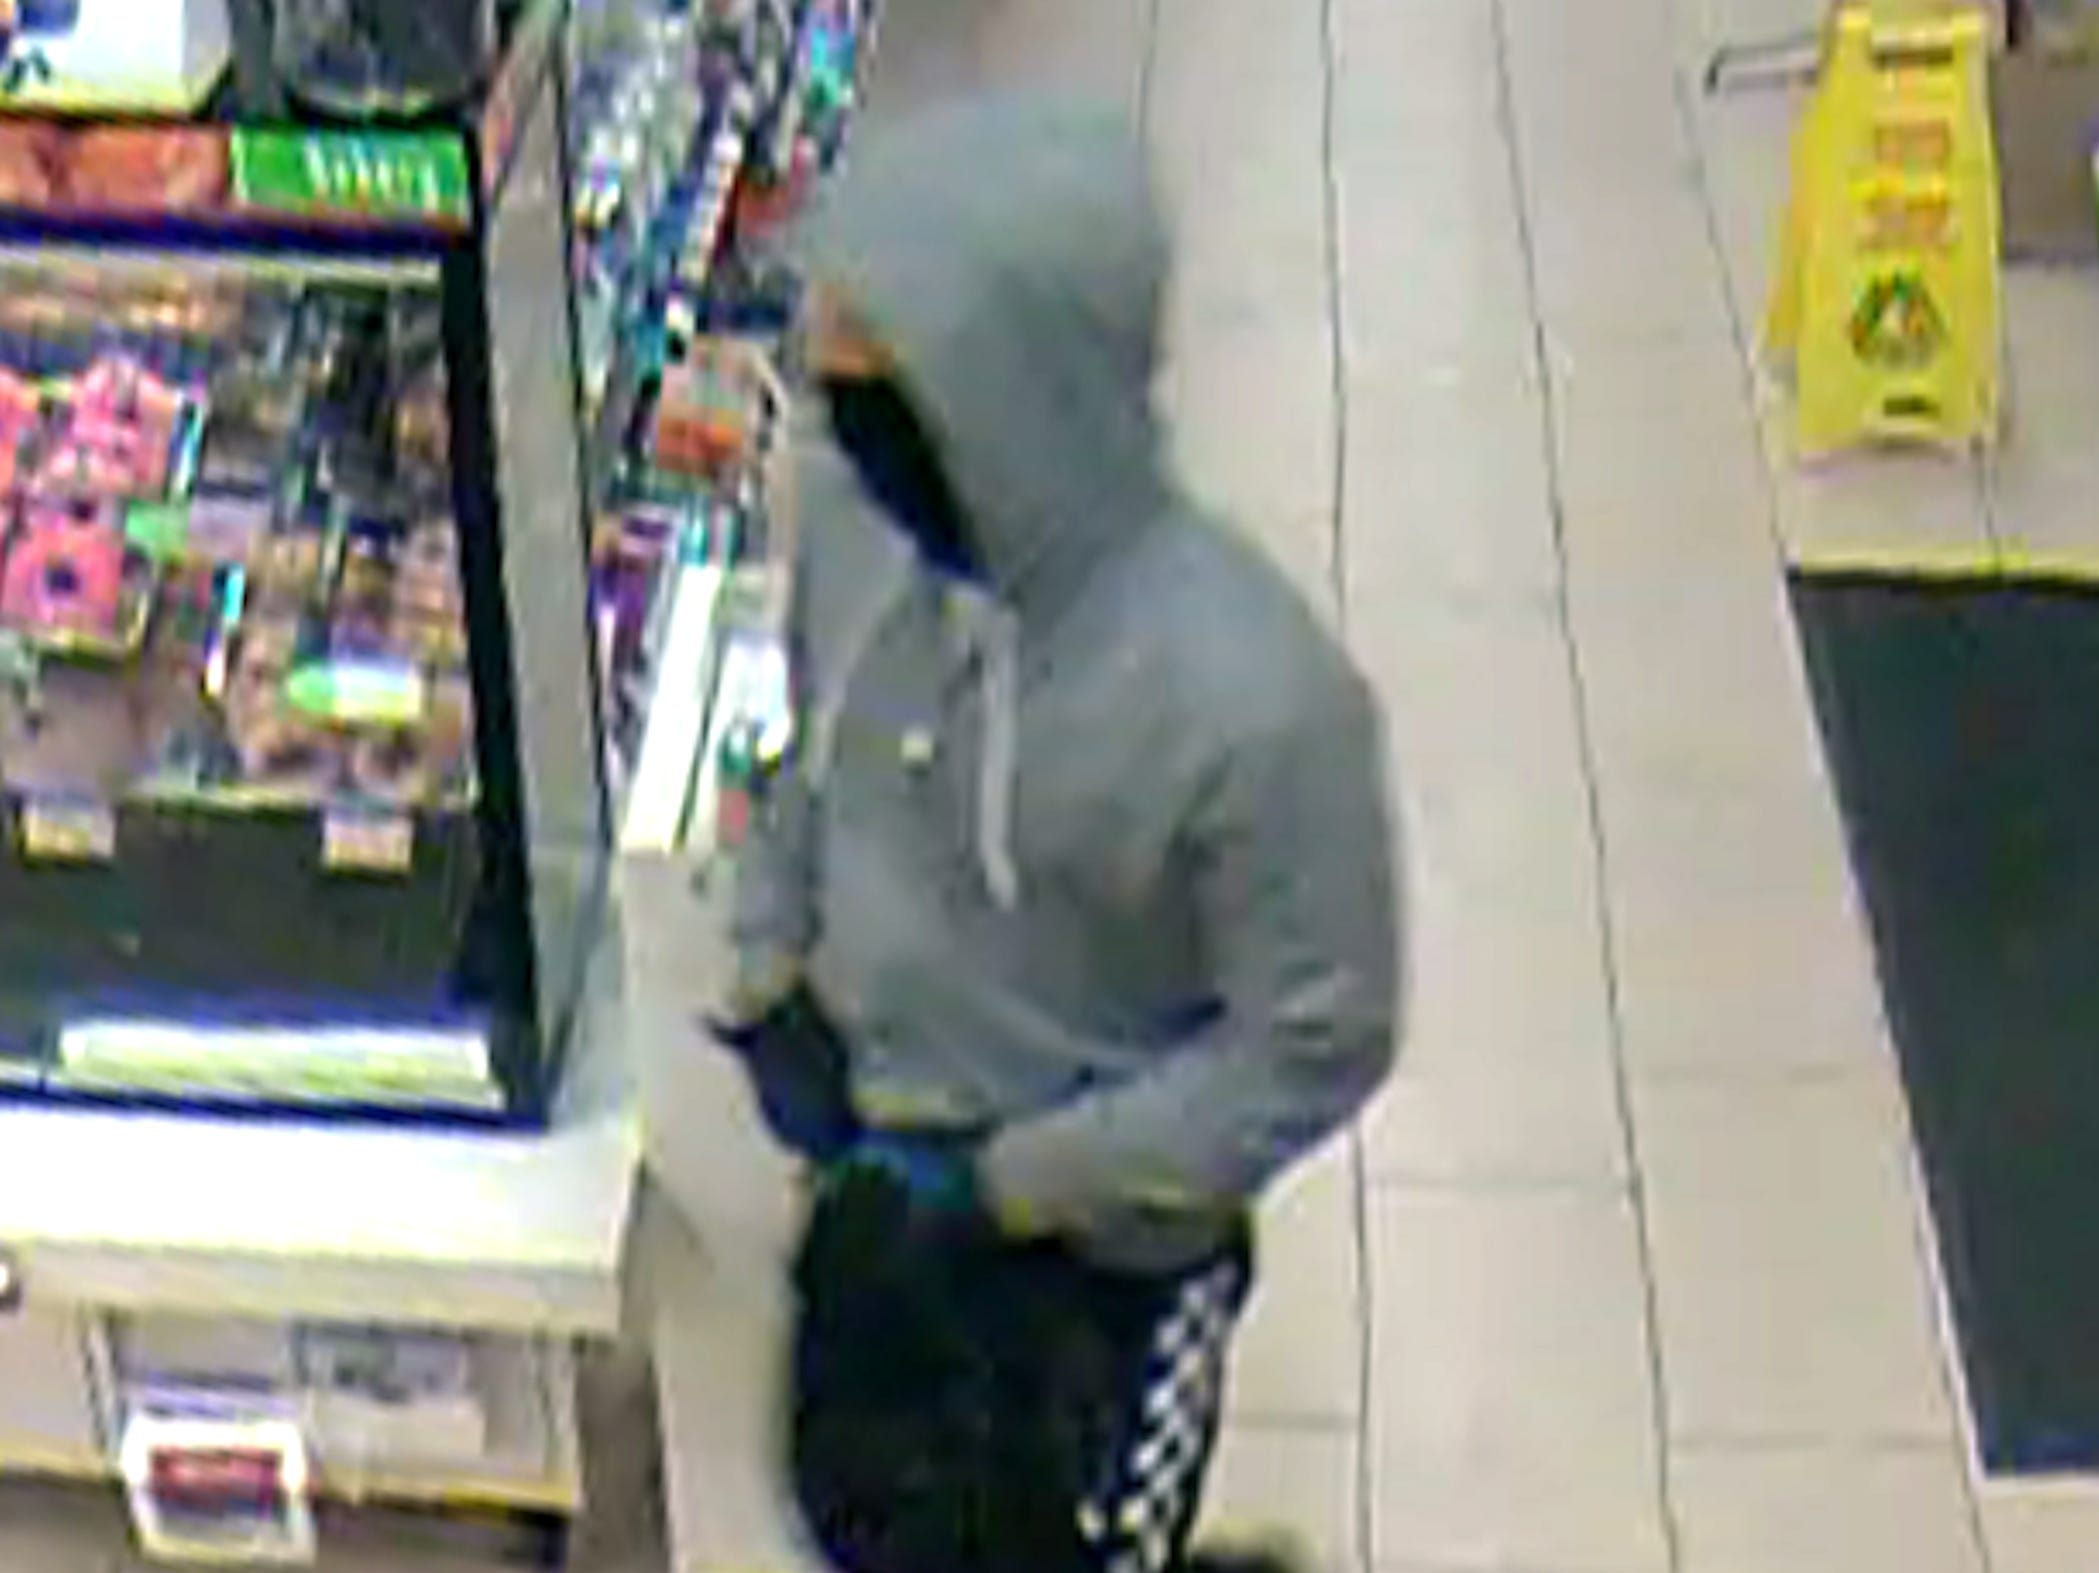 Surveillance photo of a suspect believed to have been involved in an armed robbery of a 7-Eleven store in Randolph. Jan. 10, 2019.